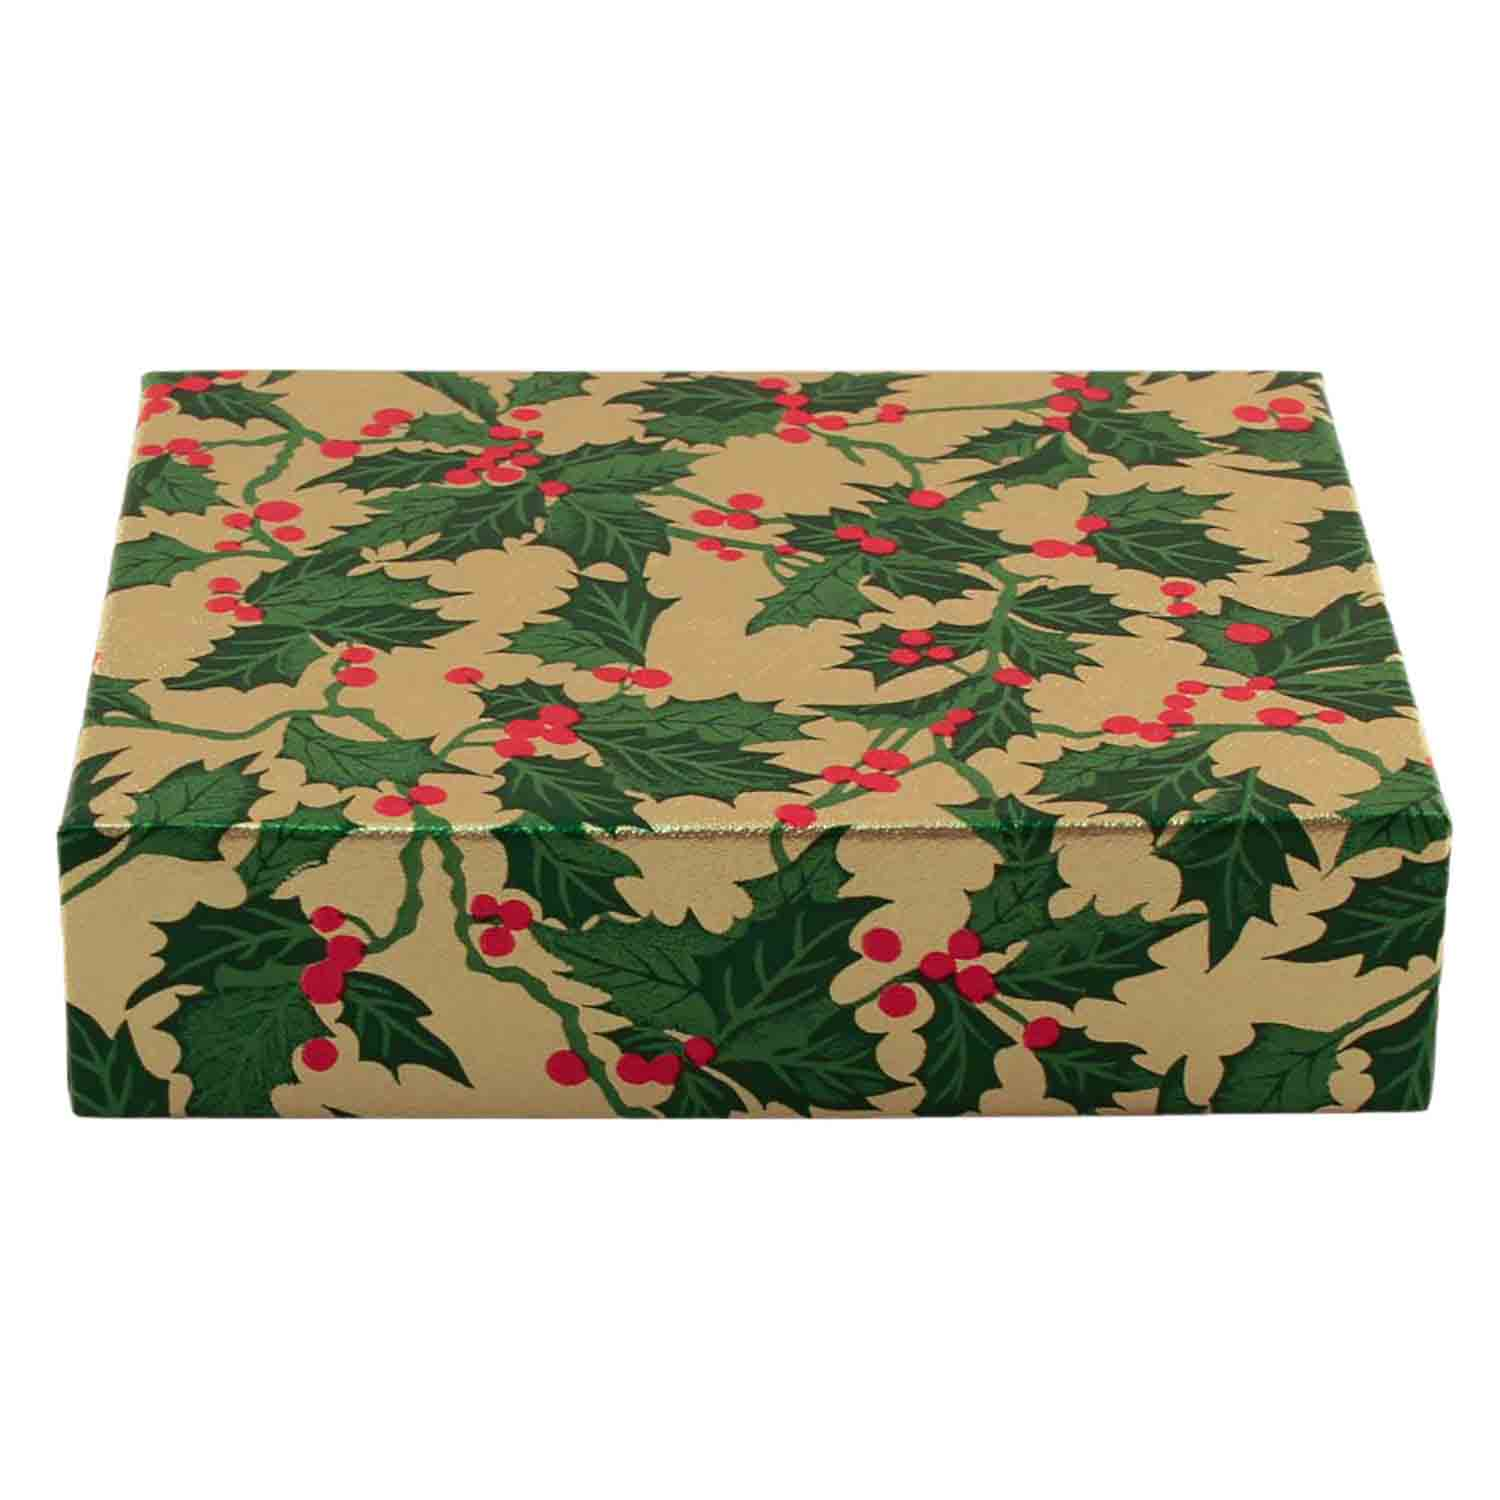 1/2 lb. Holly and Berry Candy Box with Brown Base